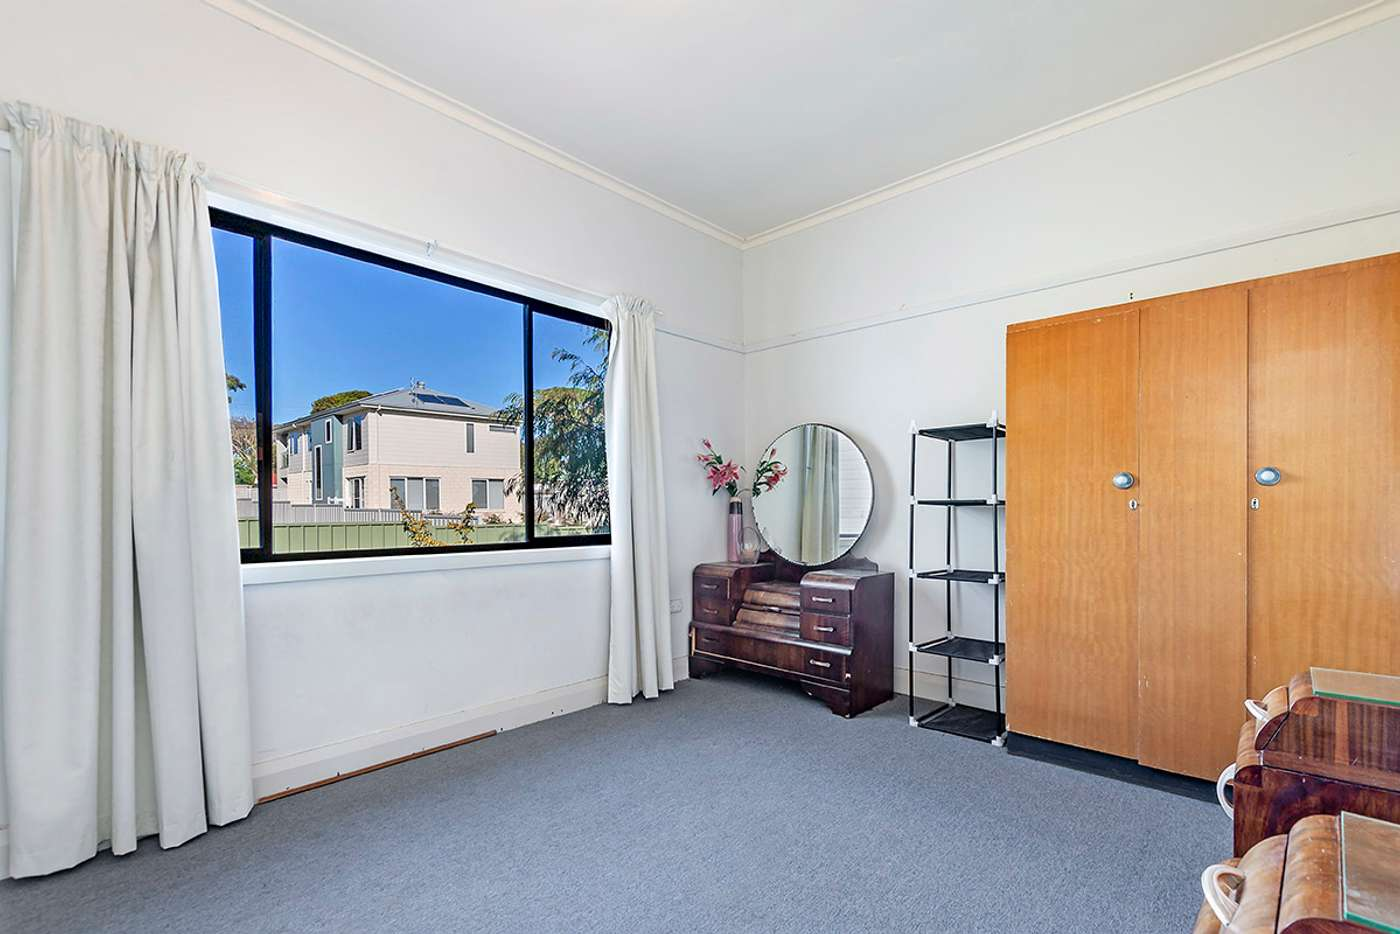 Sixth view of Homely house listing, 5 Townsend Street, Portland VIC 3305